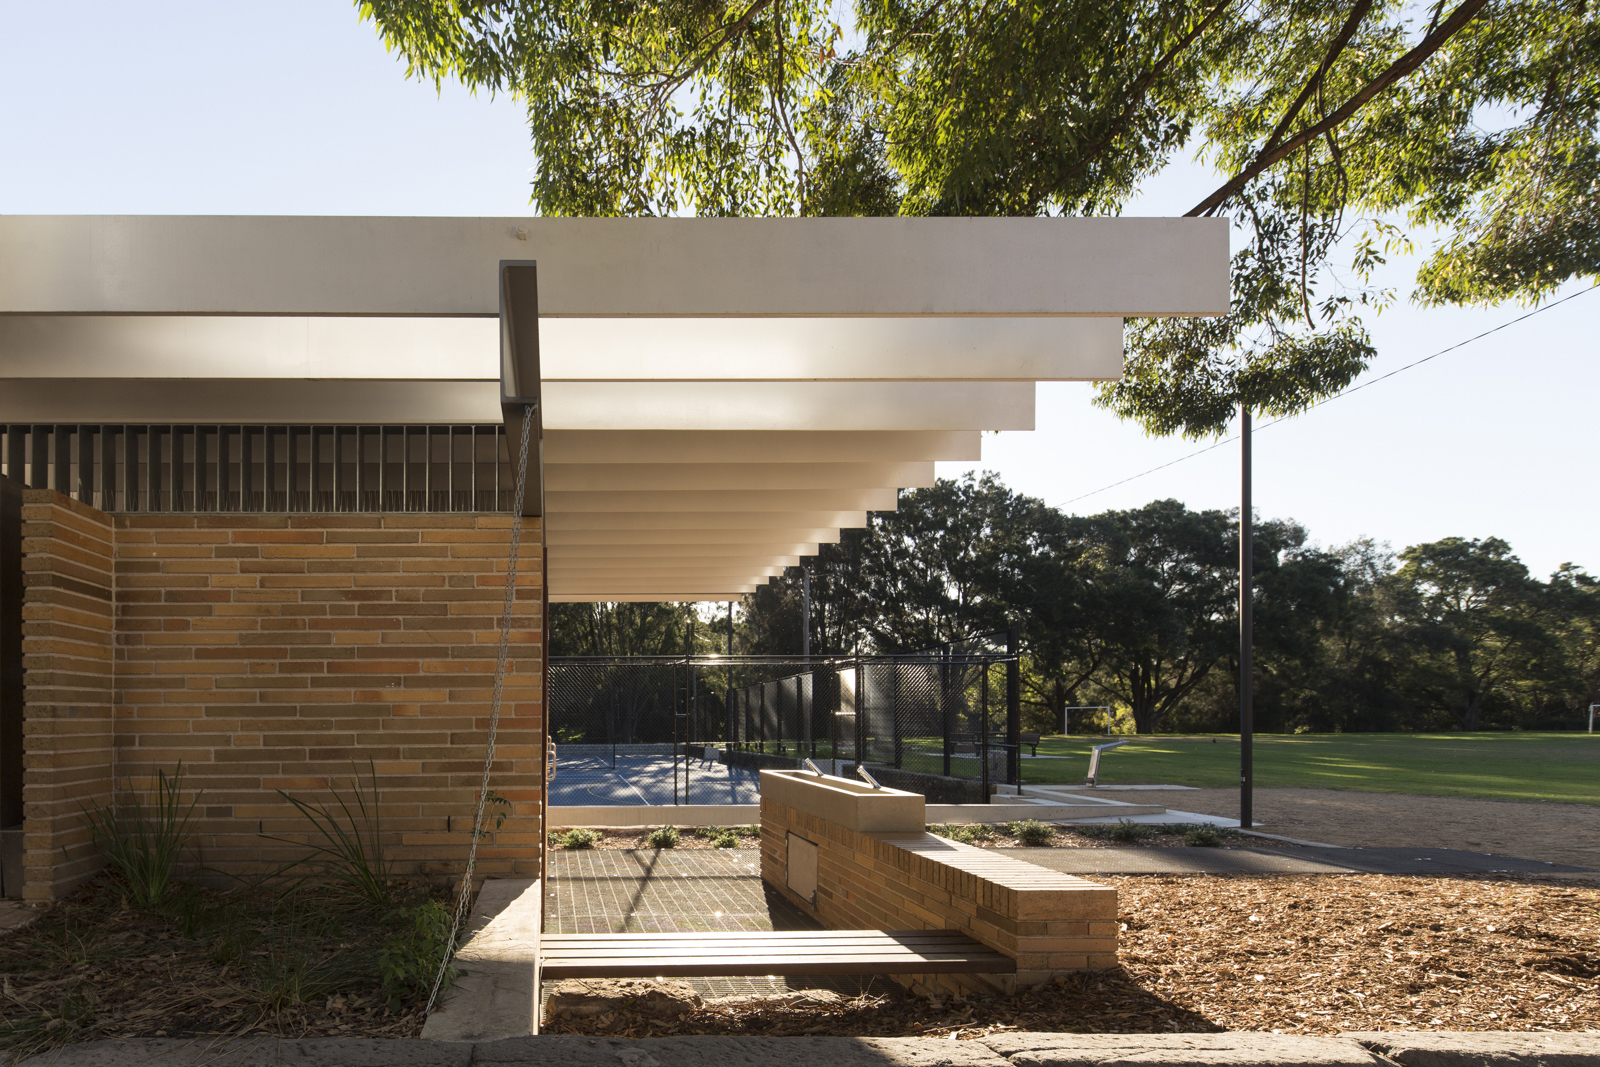 Are You Passionate About All Things Architecture And Design? The UQ  Architecture Lecture Series Will Bring Together Cutting Edge Architects And  Leading ...